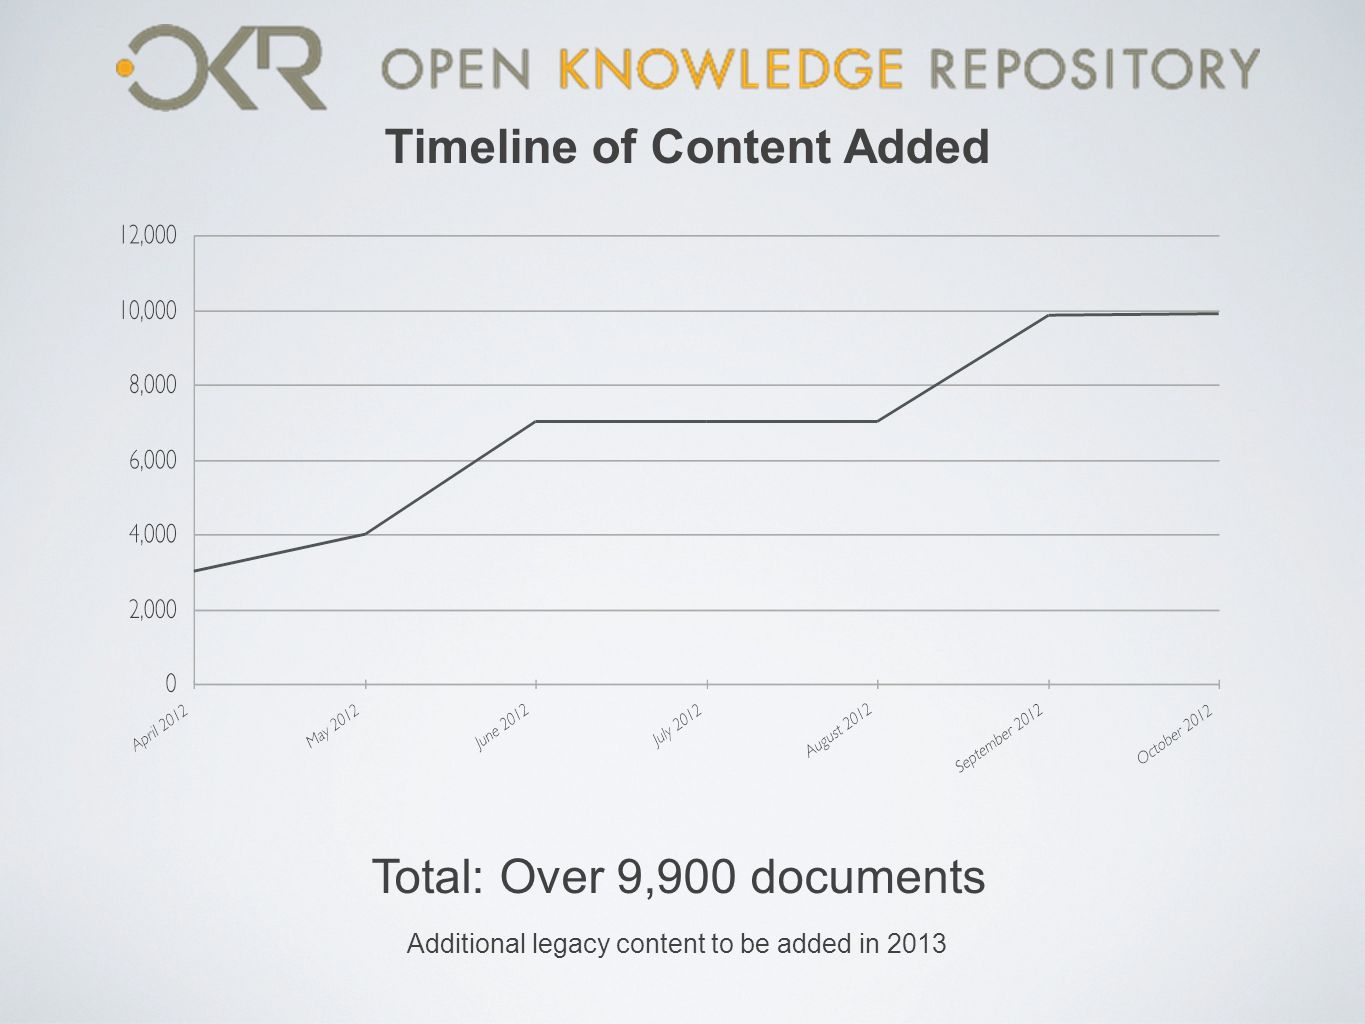 Total: Over 9,900 documents Additional legacy content to be added in 2013 Timeline of Content Added